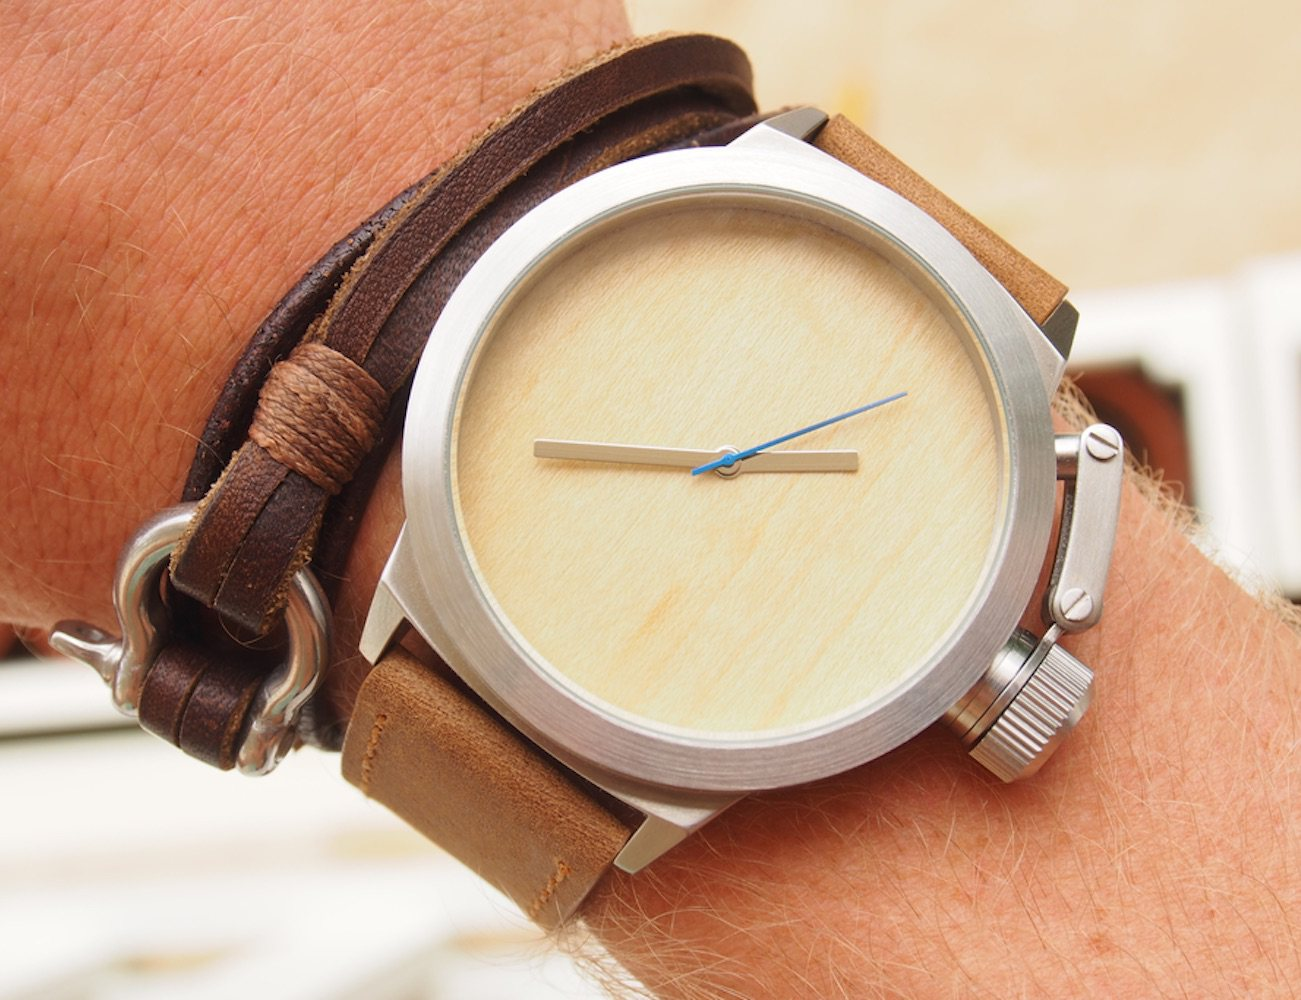 Seaval Wood/Steel Watches